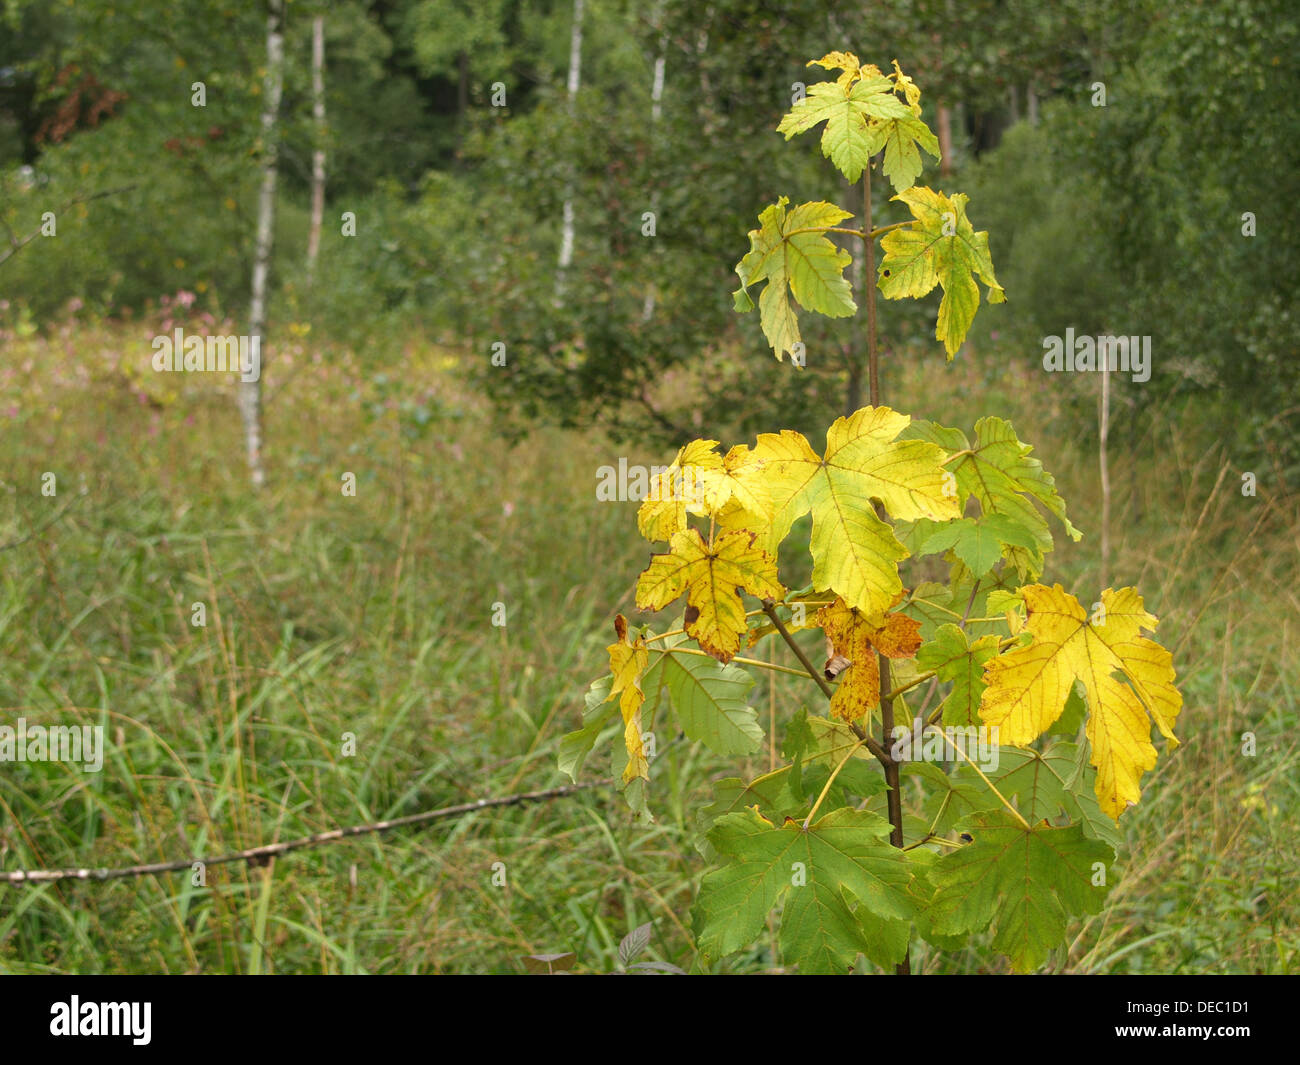 sycamore maple in autumn colors / Acer pseudoplatanus / Bergahorn in Herbstfarben Stock Photo